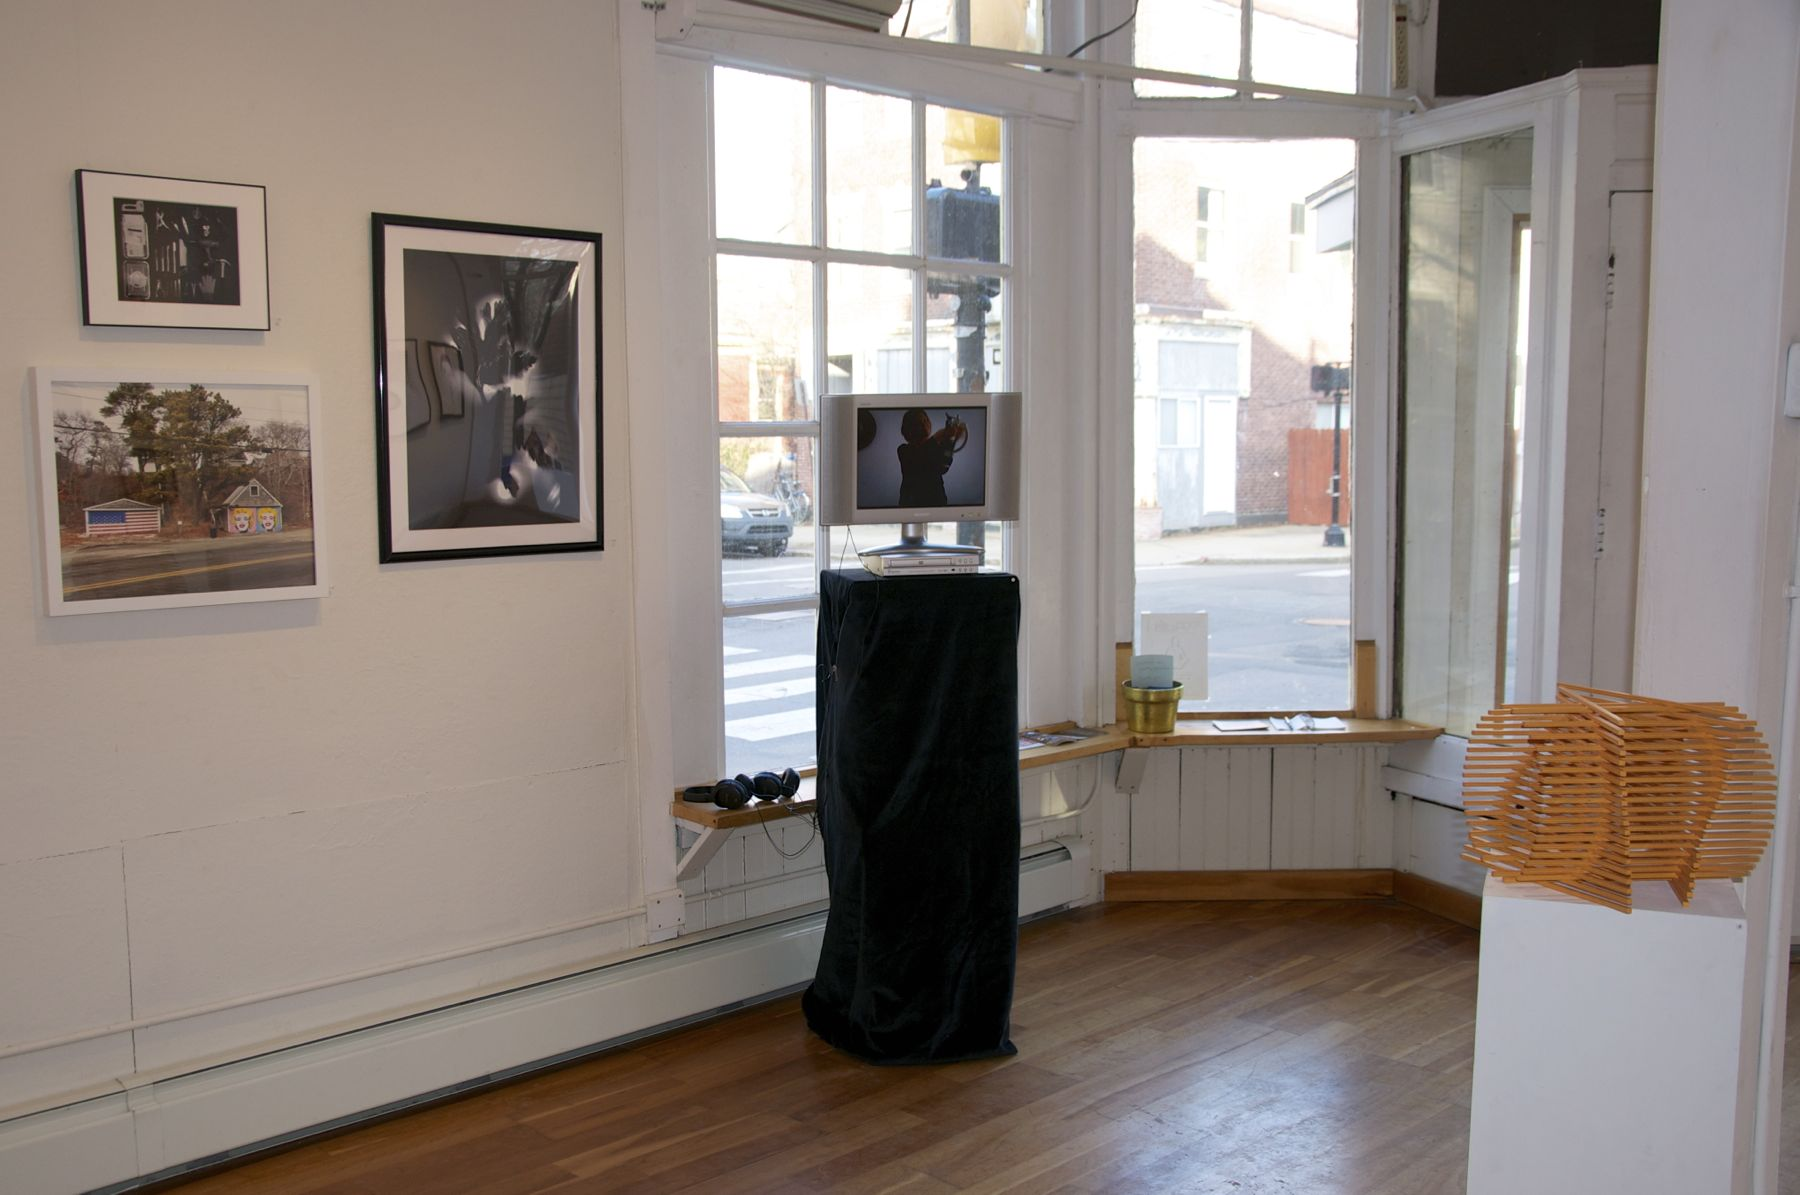 Massachusetts Juried Exhibition, Gallery 263, 2014